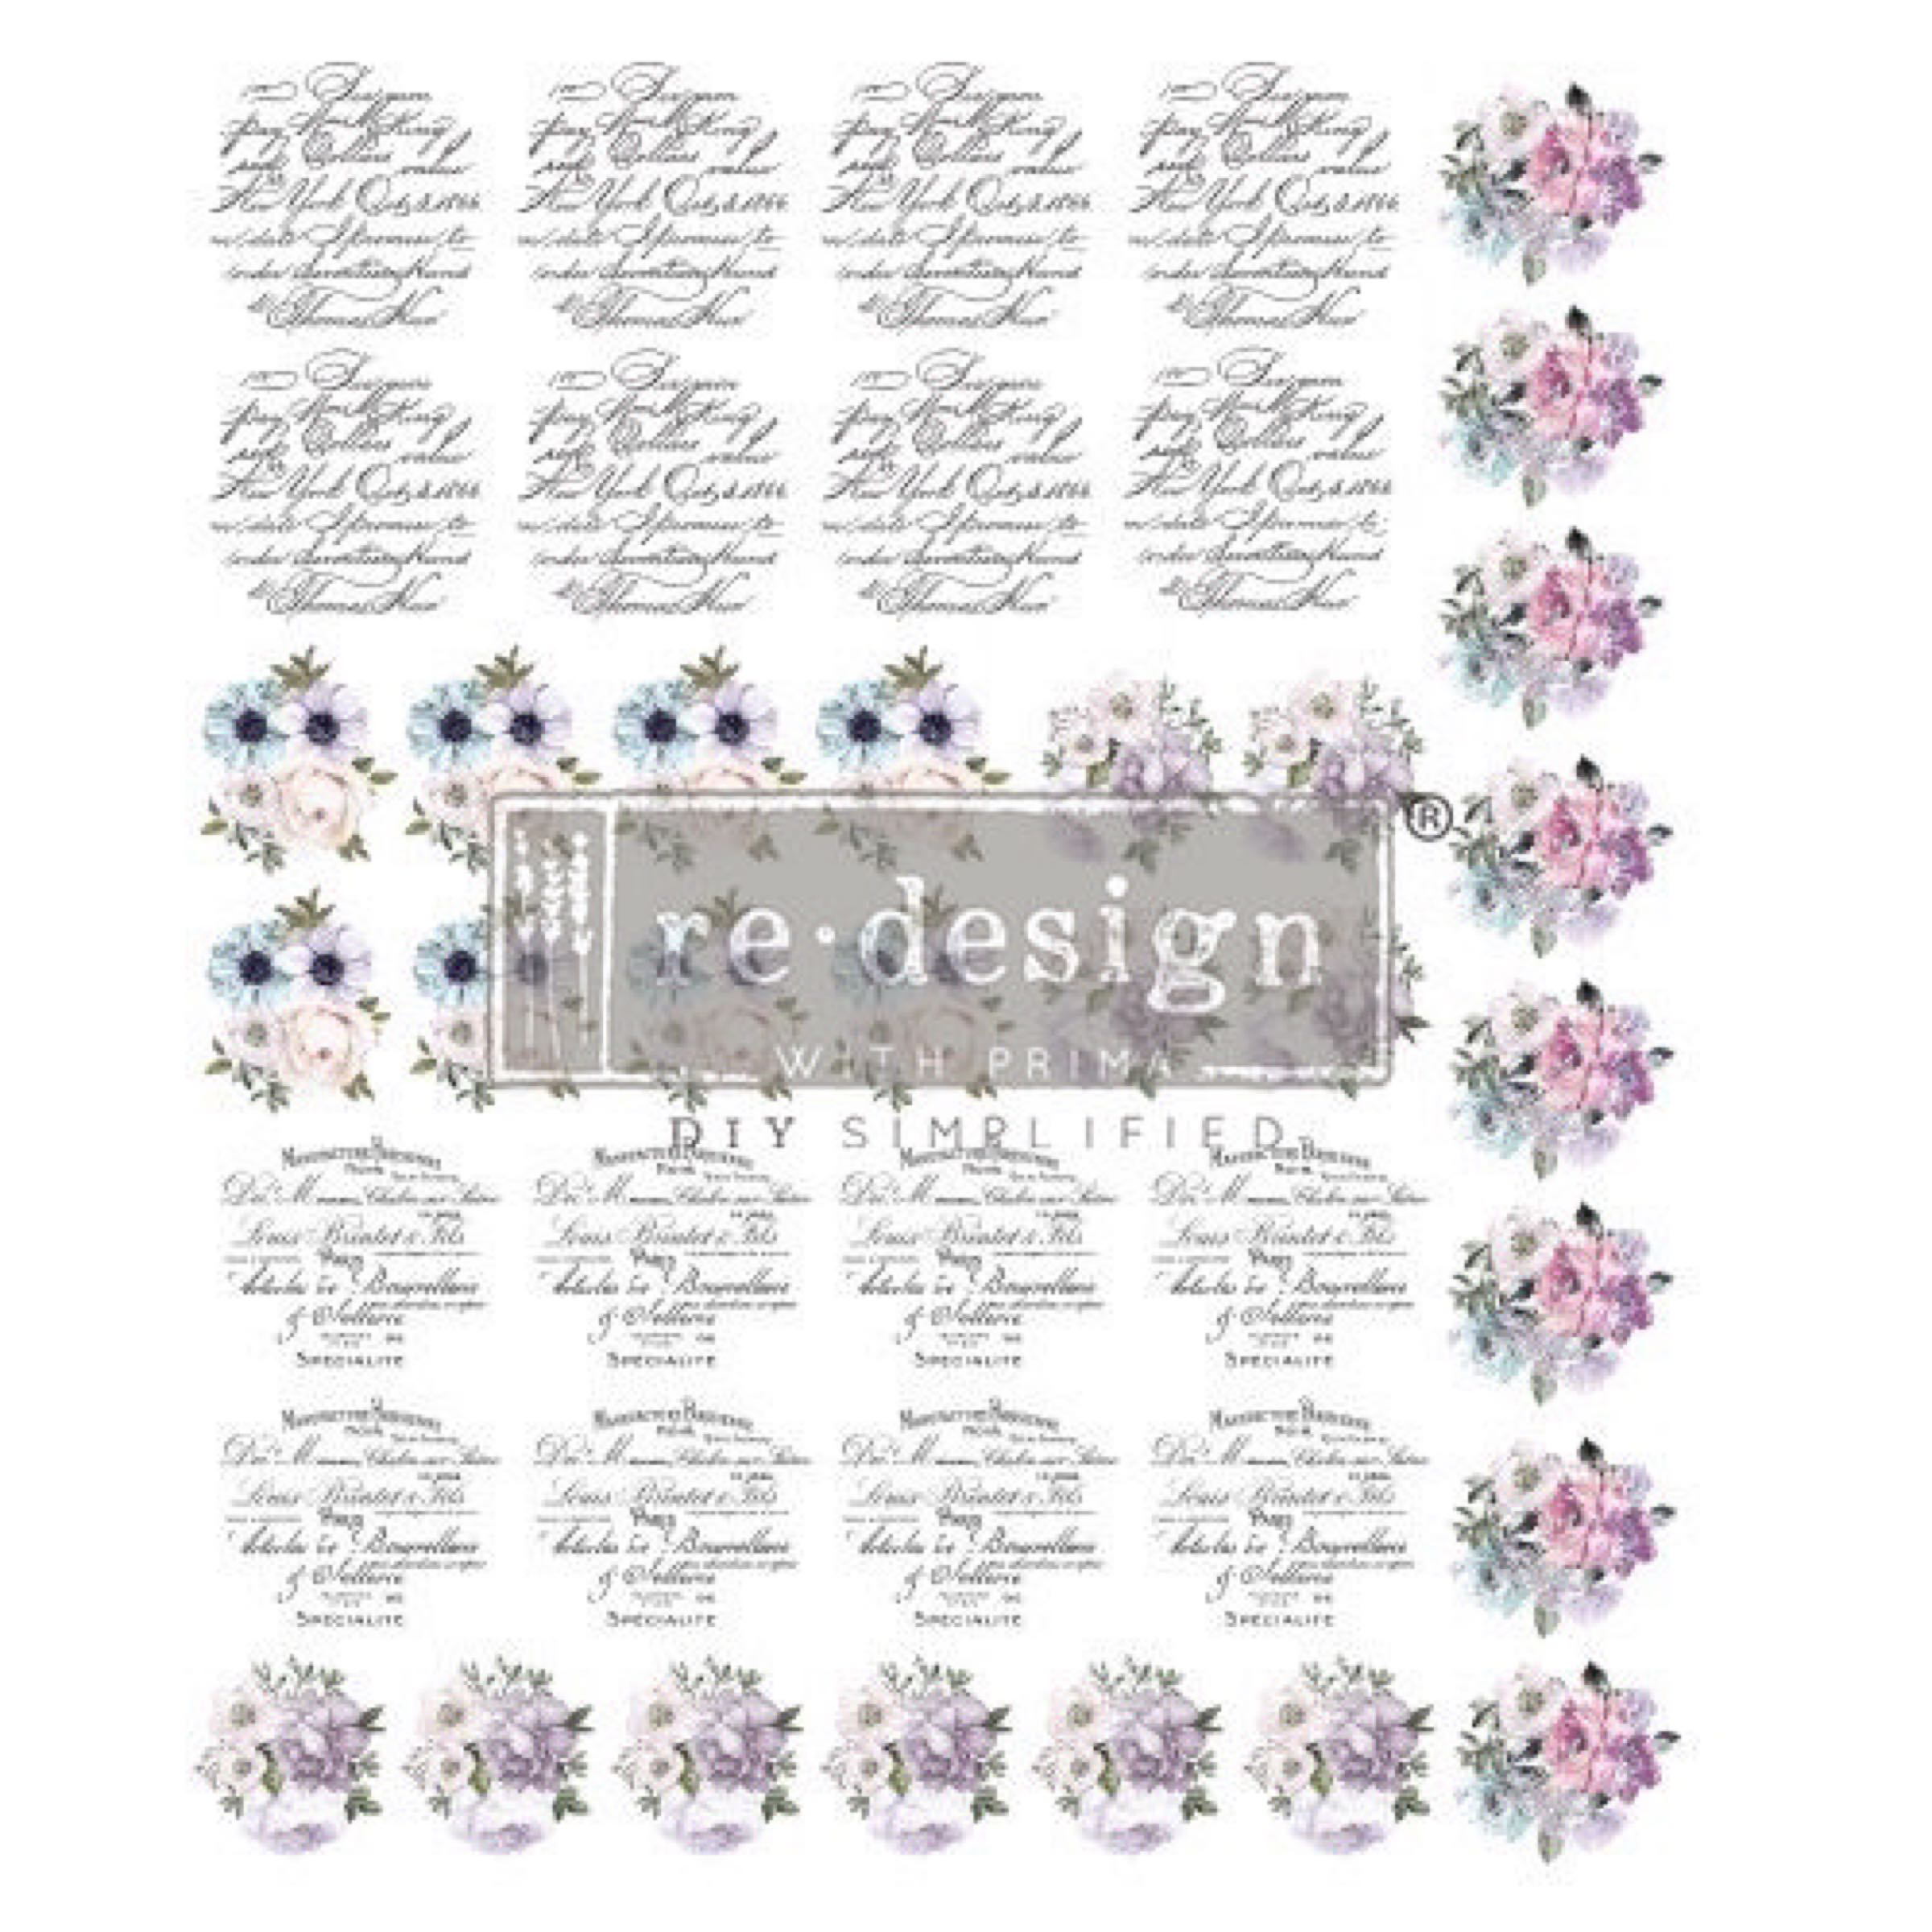 Re-Design with Prima Knob  Transfers - Spring Meadow OUT OF STOCK